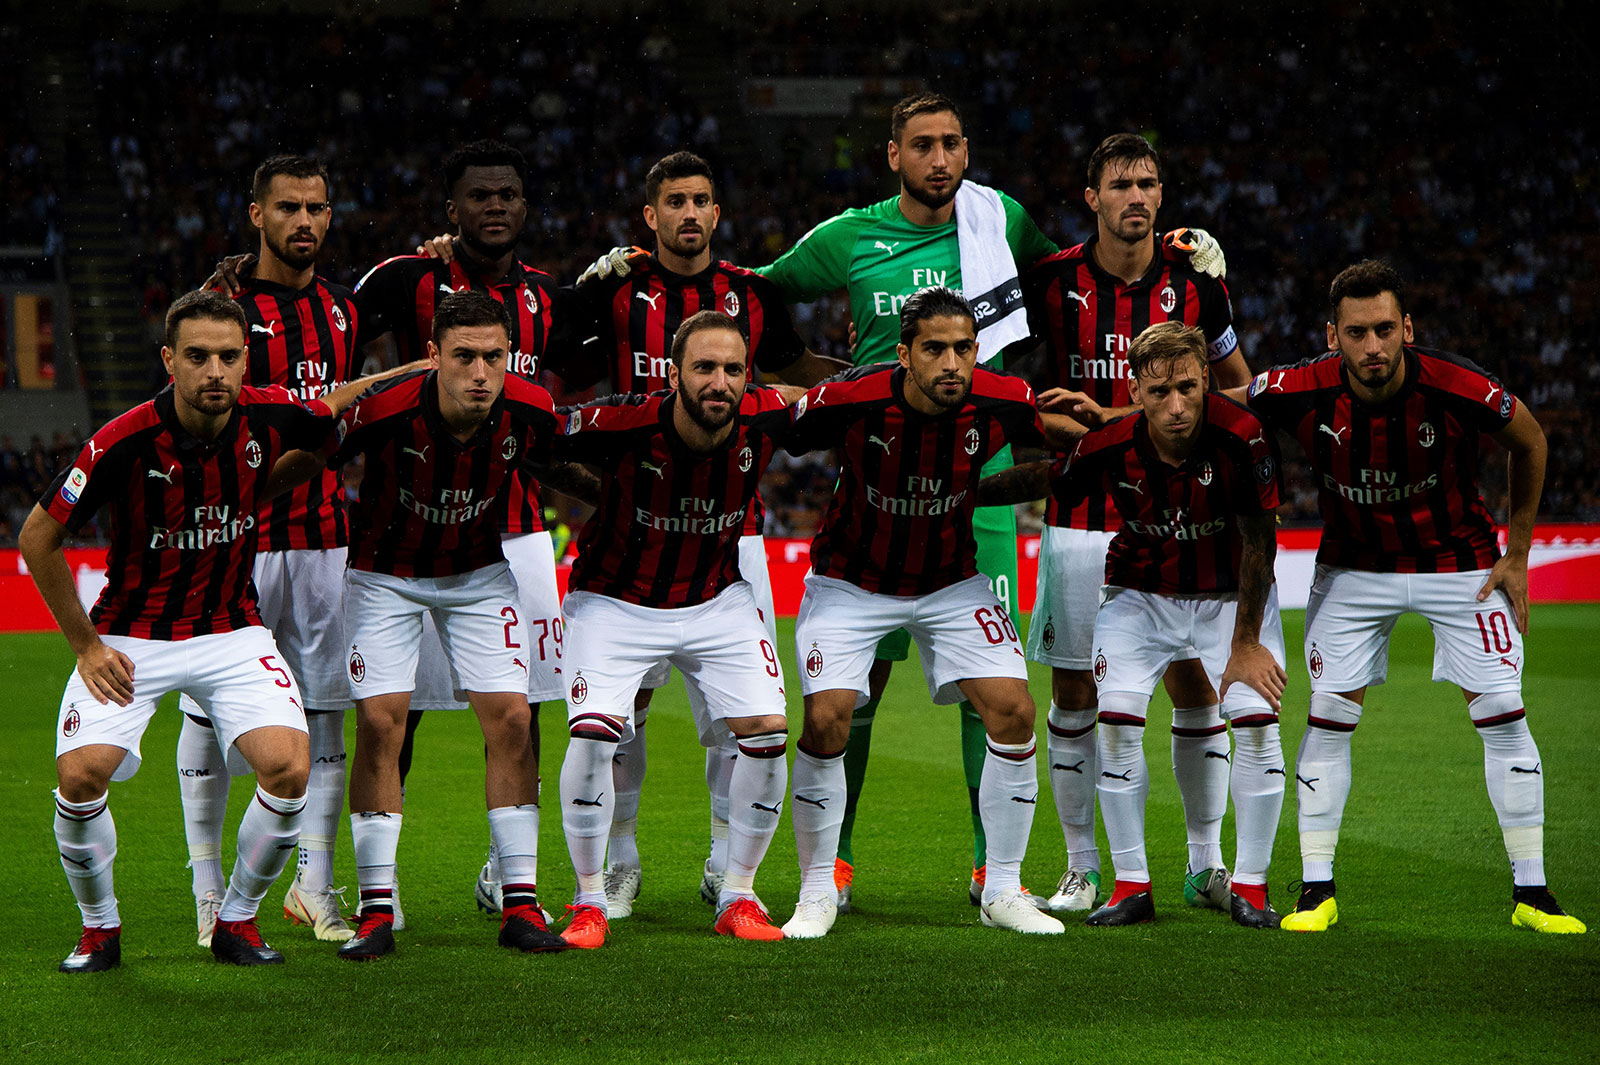 Suso, Franck Kessié, Mateo Musacchio, Gianluigi Donnarumma, Alessio Romagnoli, Giacomo Bonaventura, Davide Calabria, Gonzalo Higuain, Ricardo Rodriguez, Lucas Biglia and Hakan Çalhanoğlu before Milan-Roma at Stadio San Siro on August 31, 2018. (MARCO BERTORELLO/AFP/Getty Images)